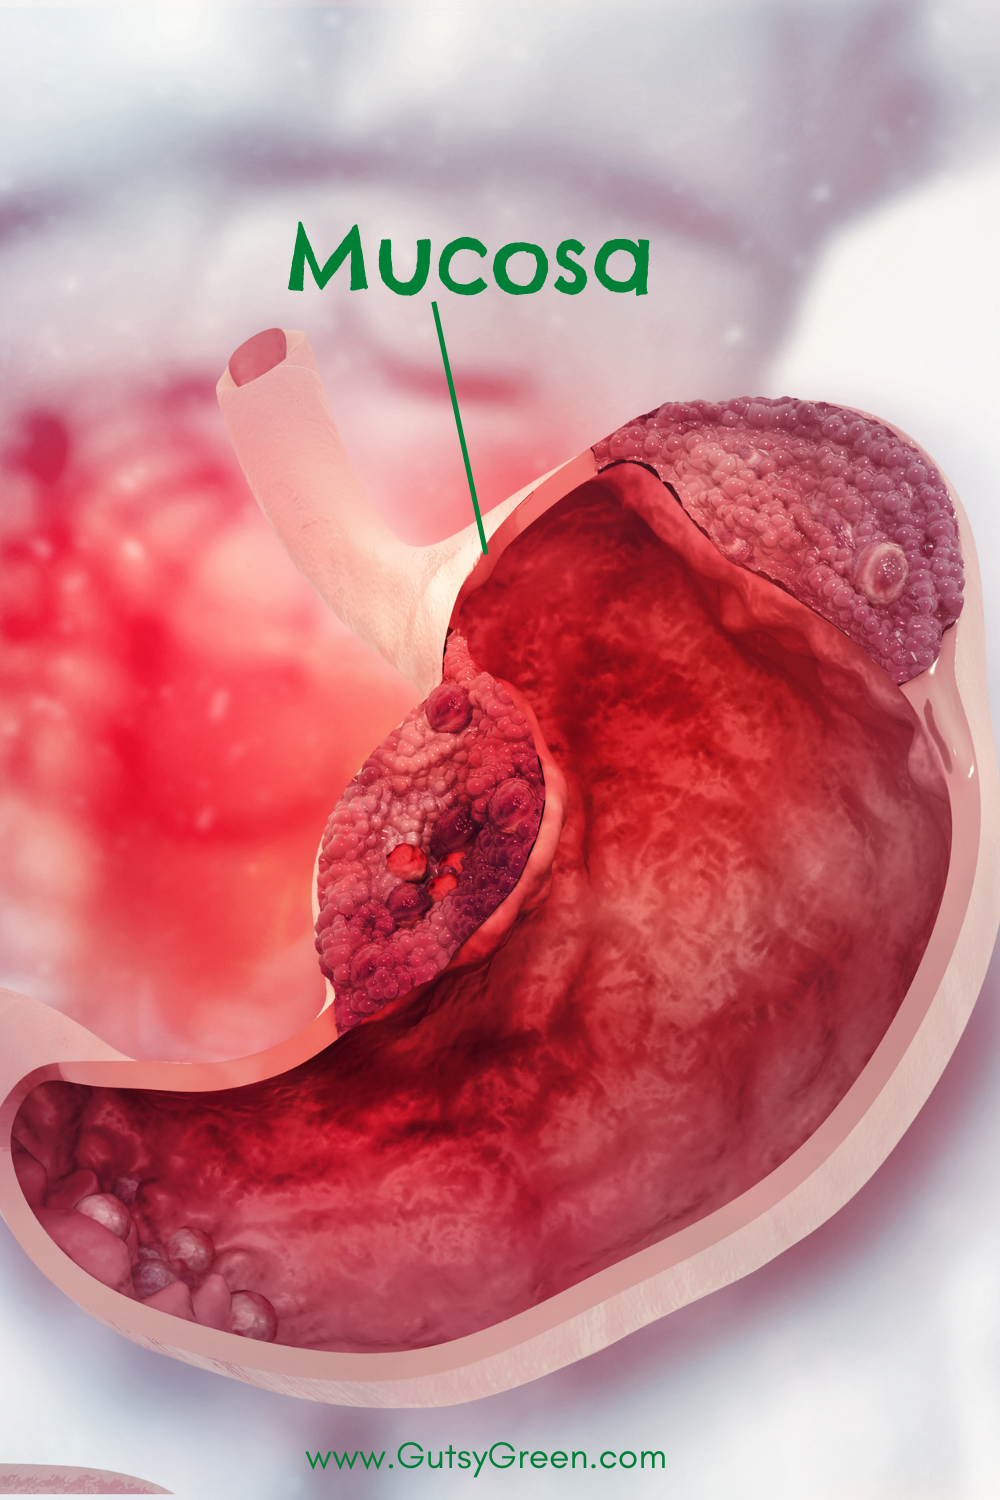 tums and mucosa.png